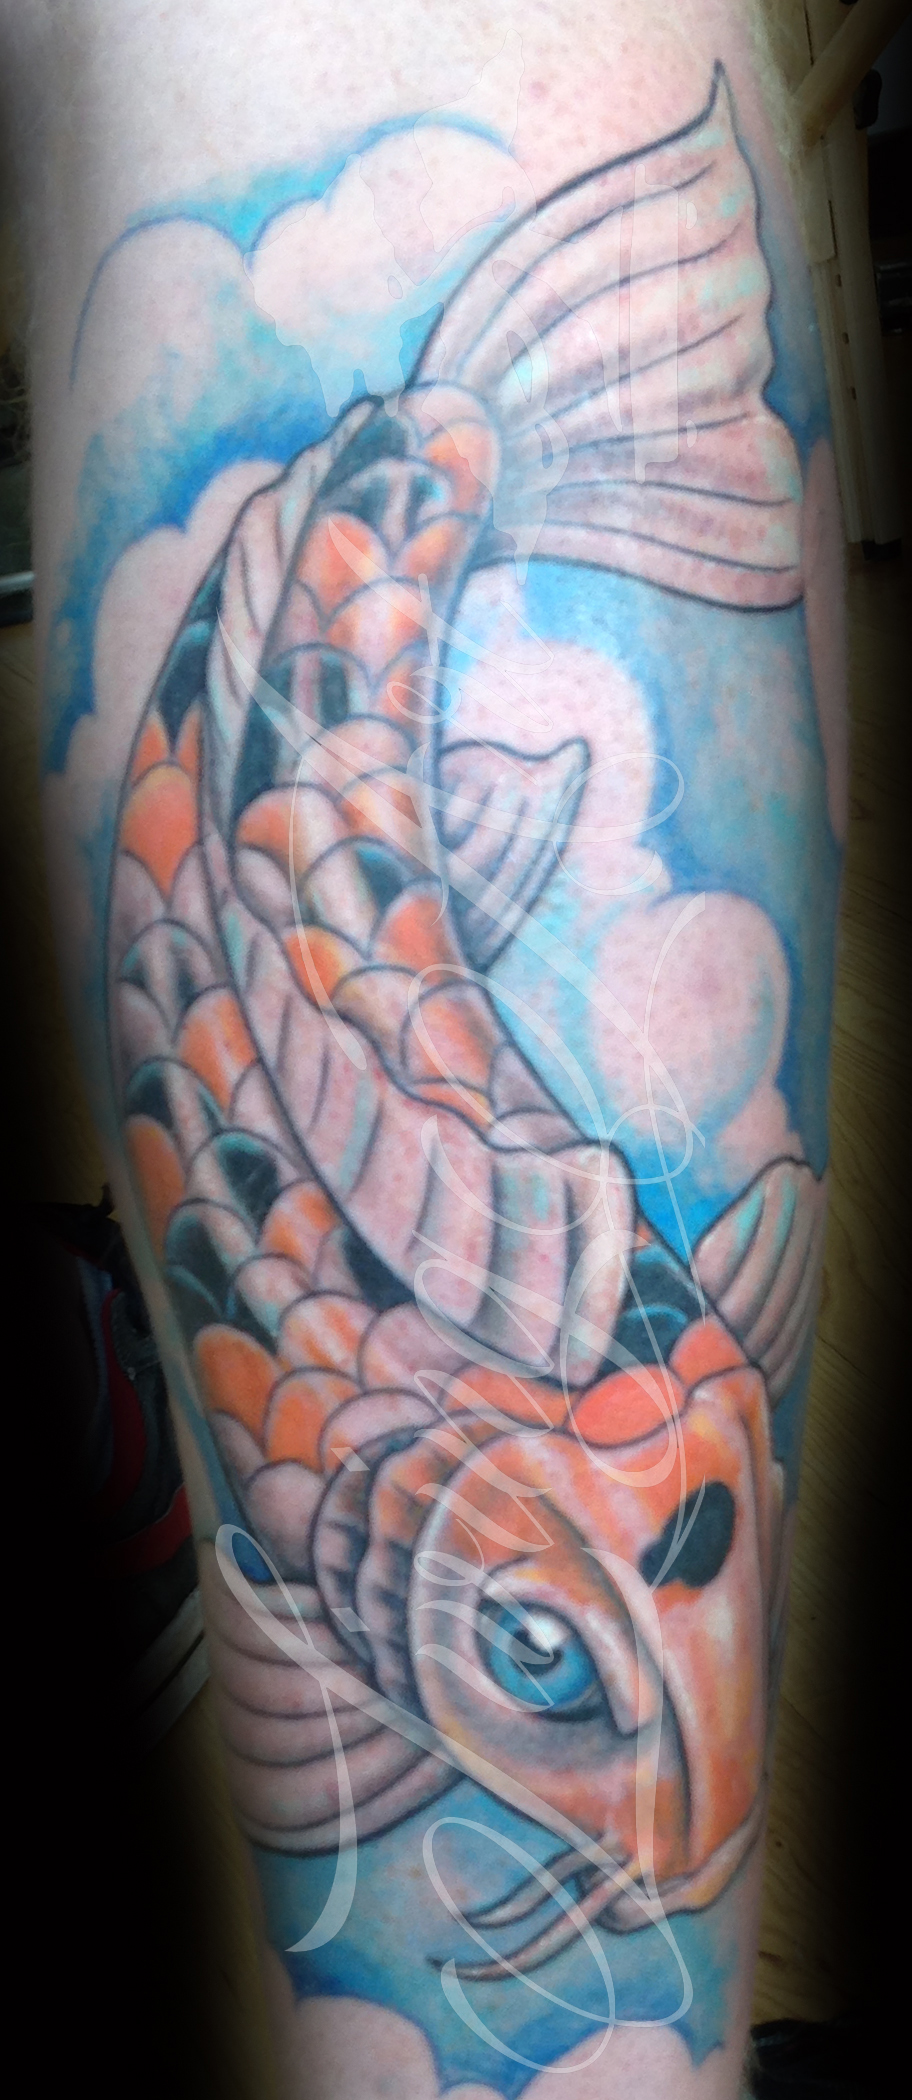 chris owen tattoo_koi tattoo_japanese tattoo.jpg